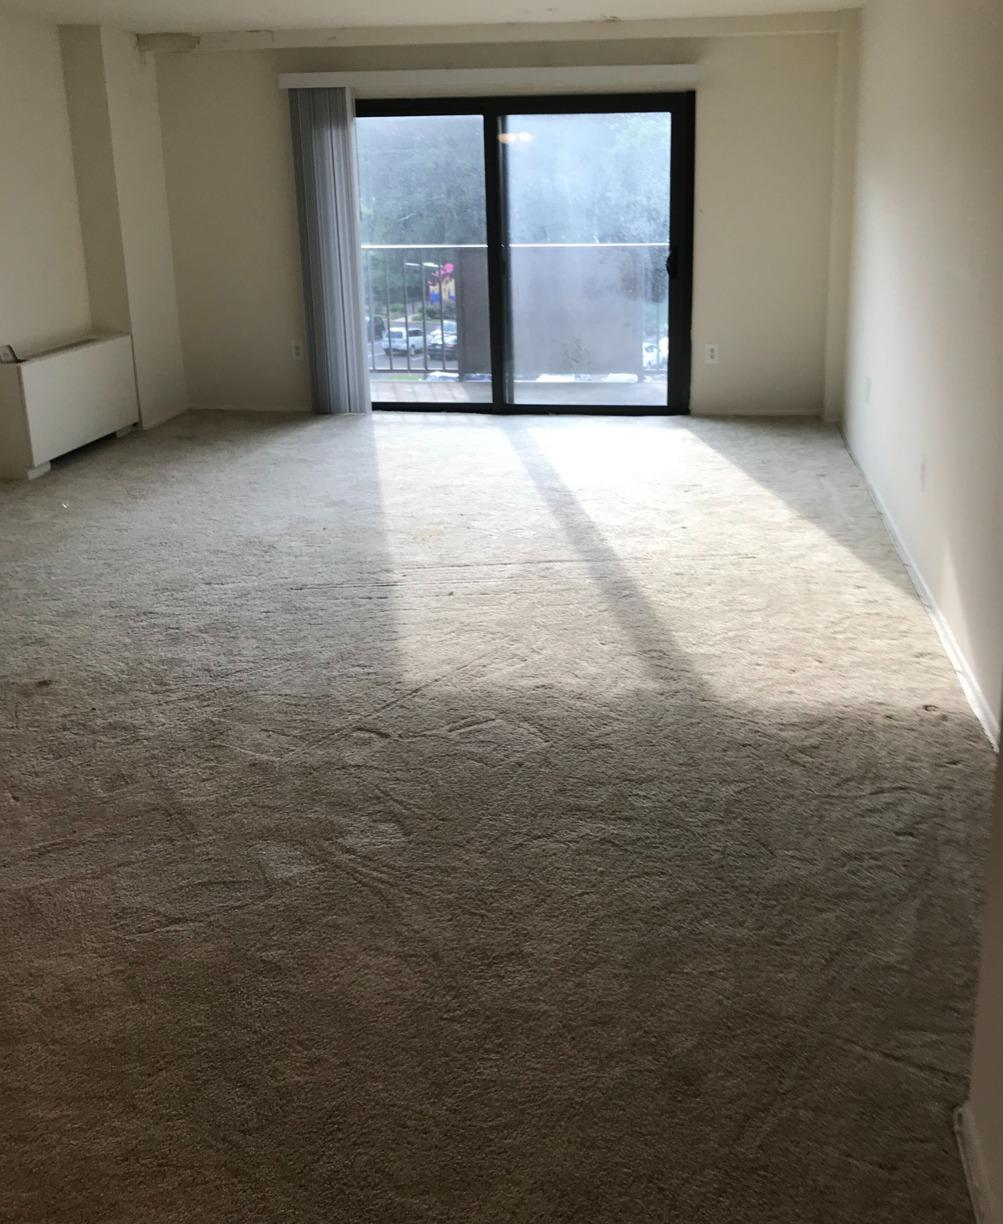 Apartment Cleanout in Willow Grove, PA - After Photo